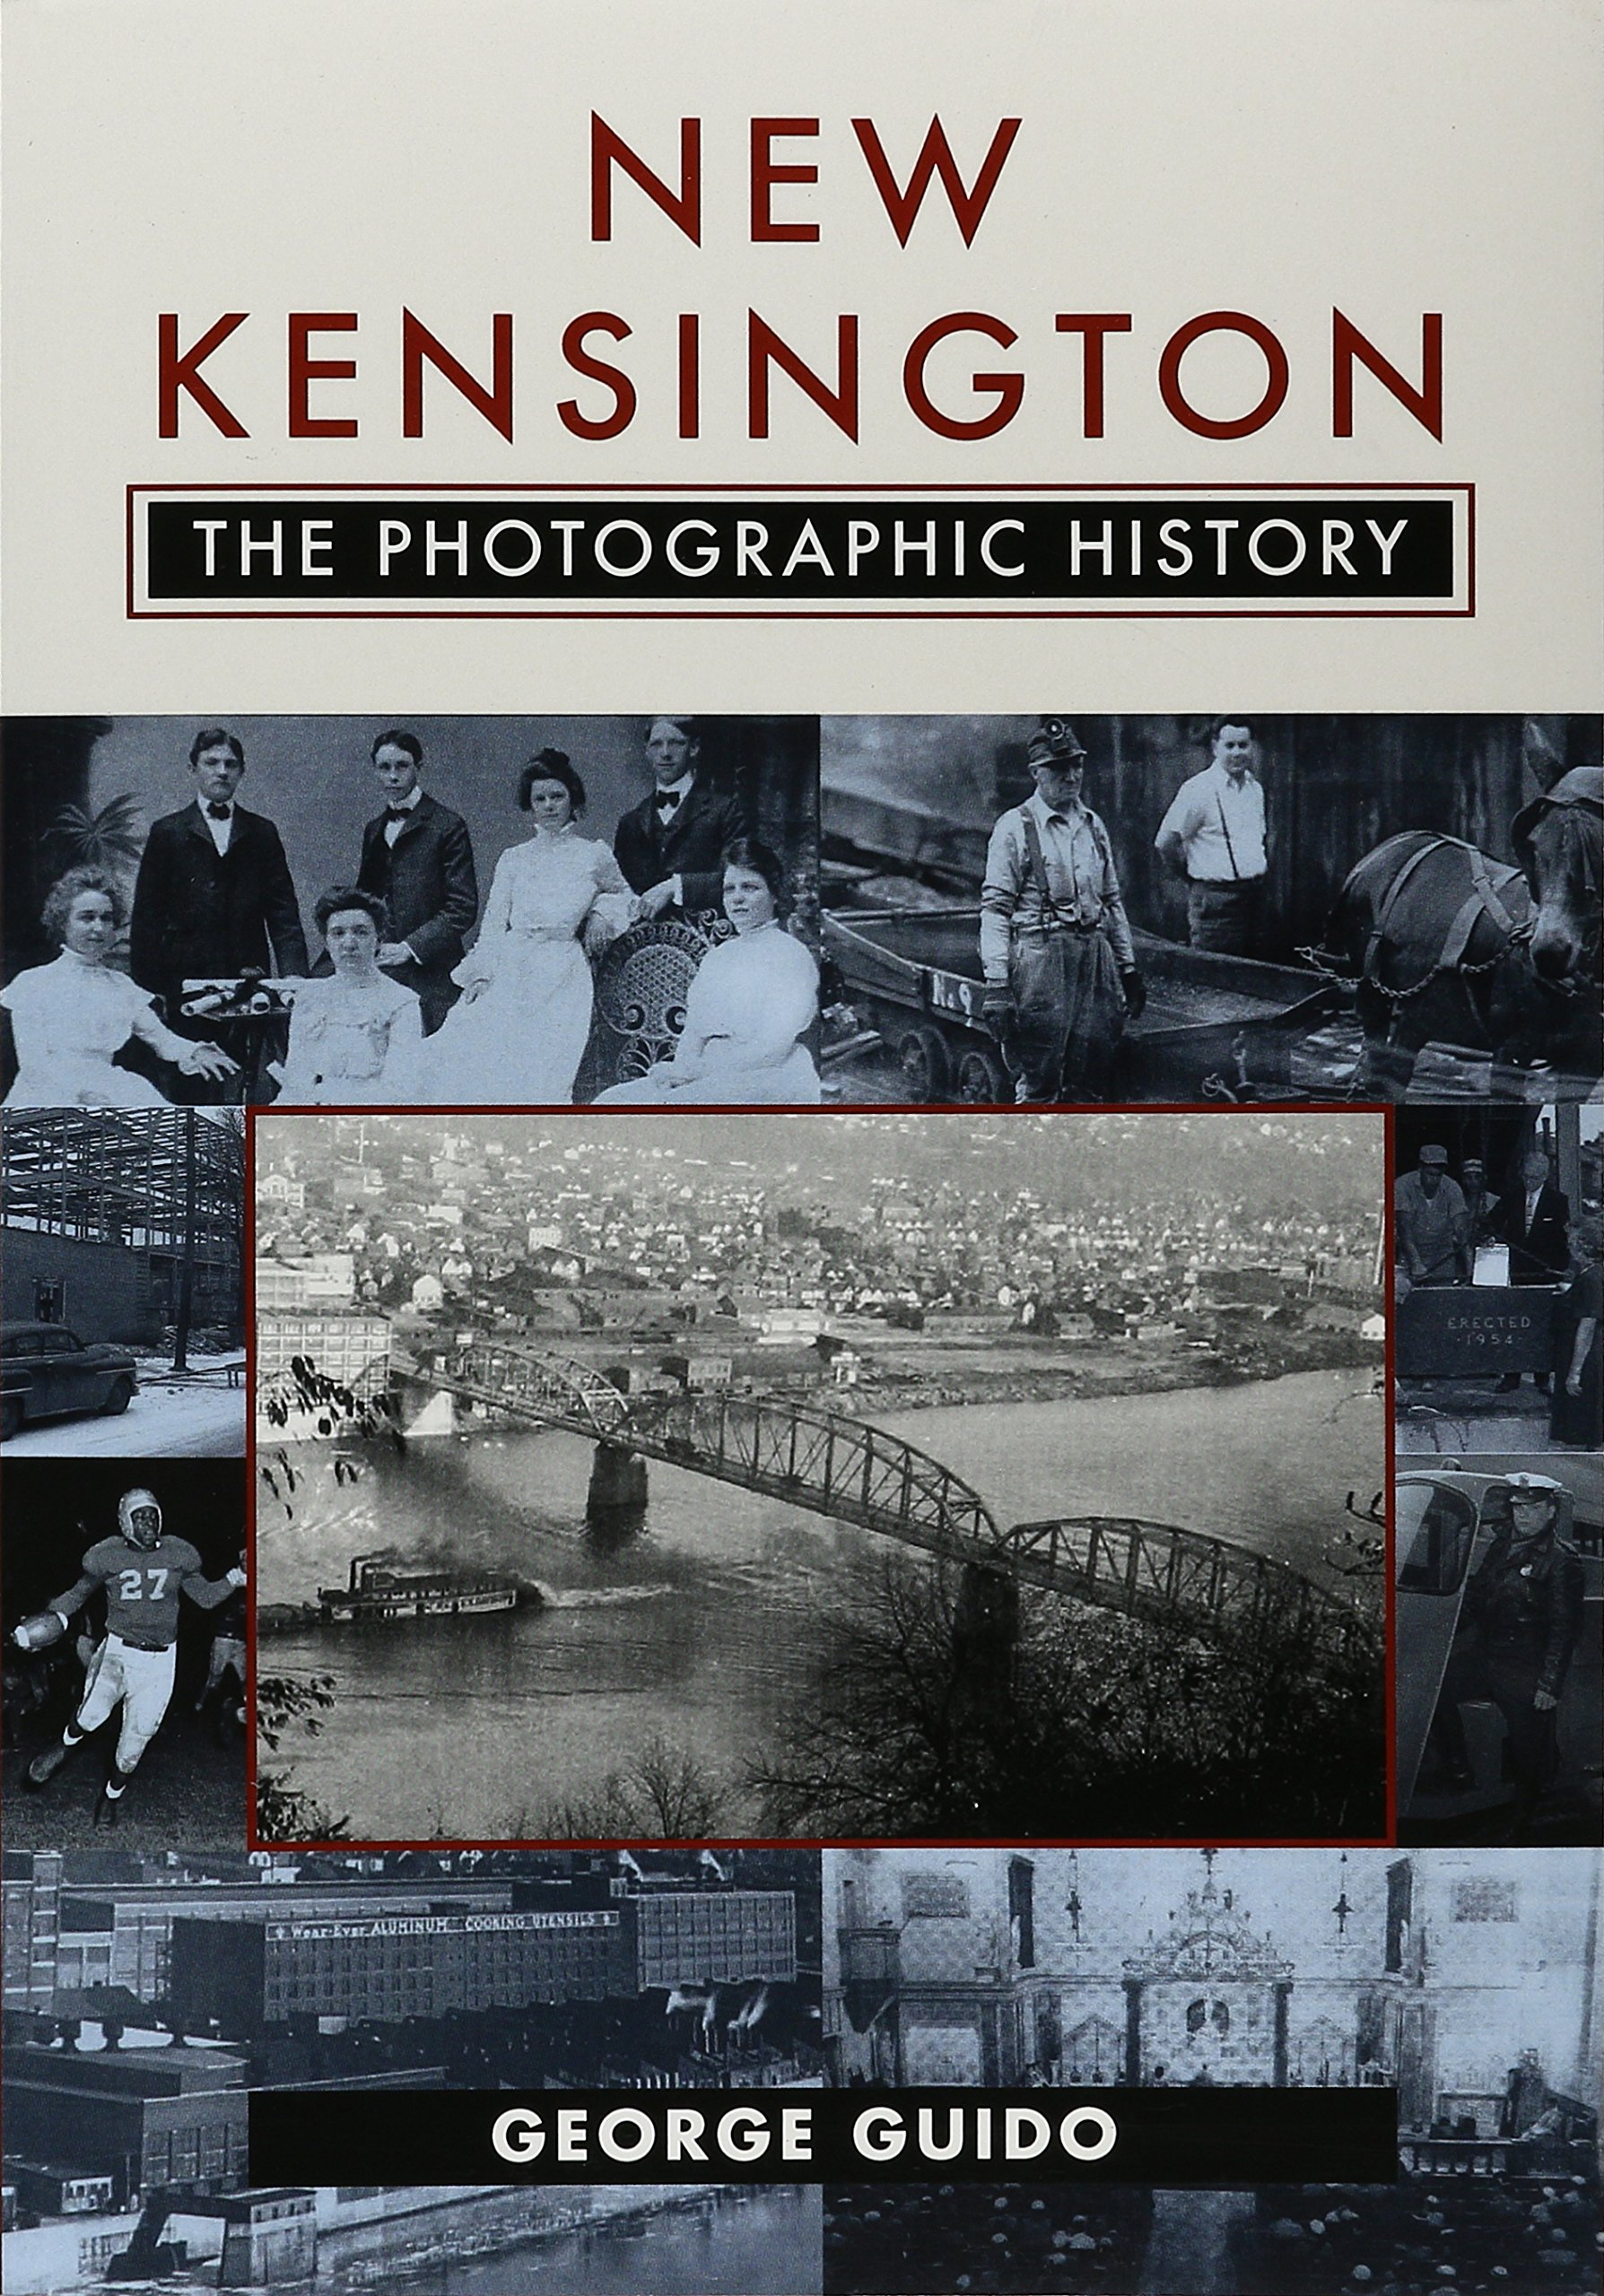 New Kensington: The Photographic History